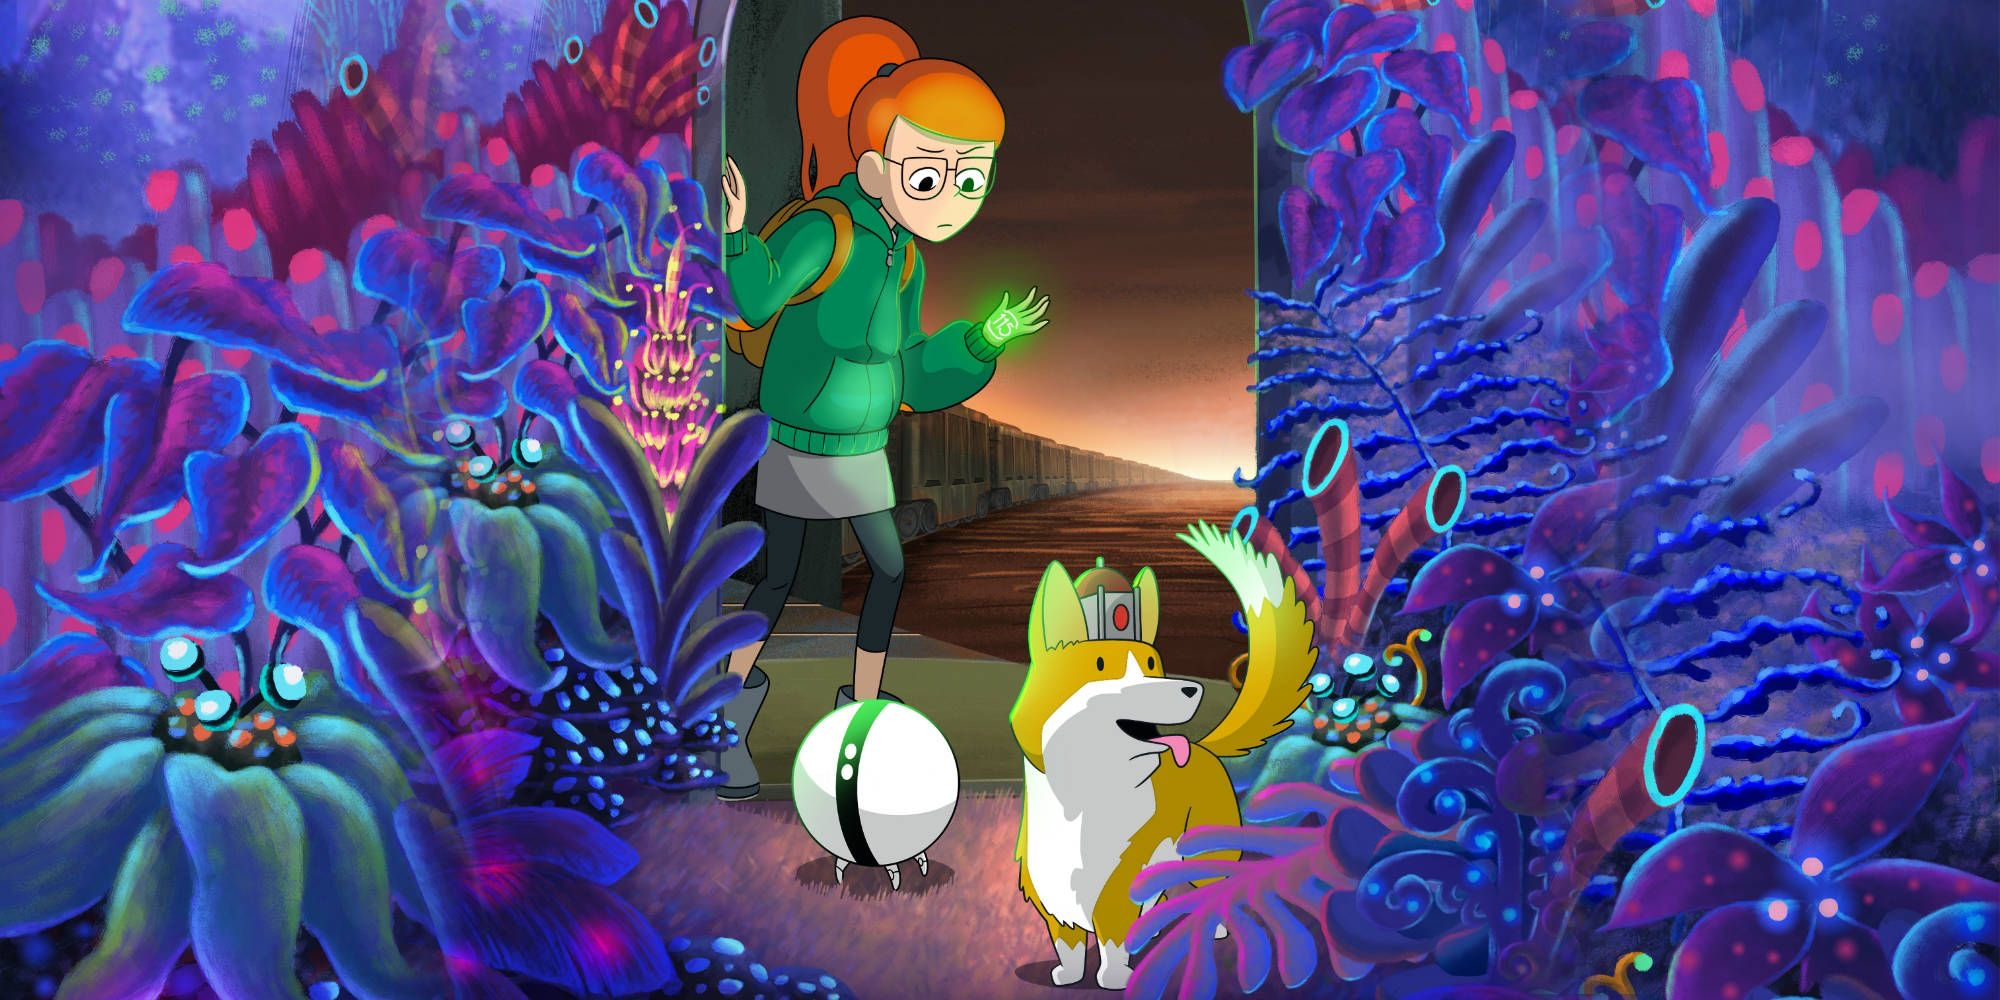 Infinity Train Season 4: Release Date, Teaser, Trailer and More!